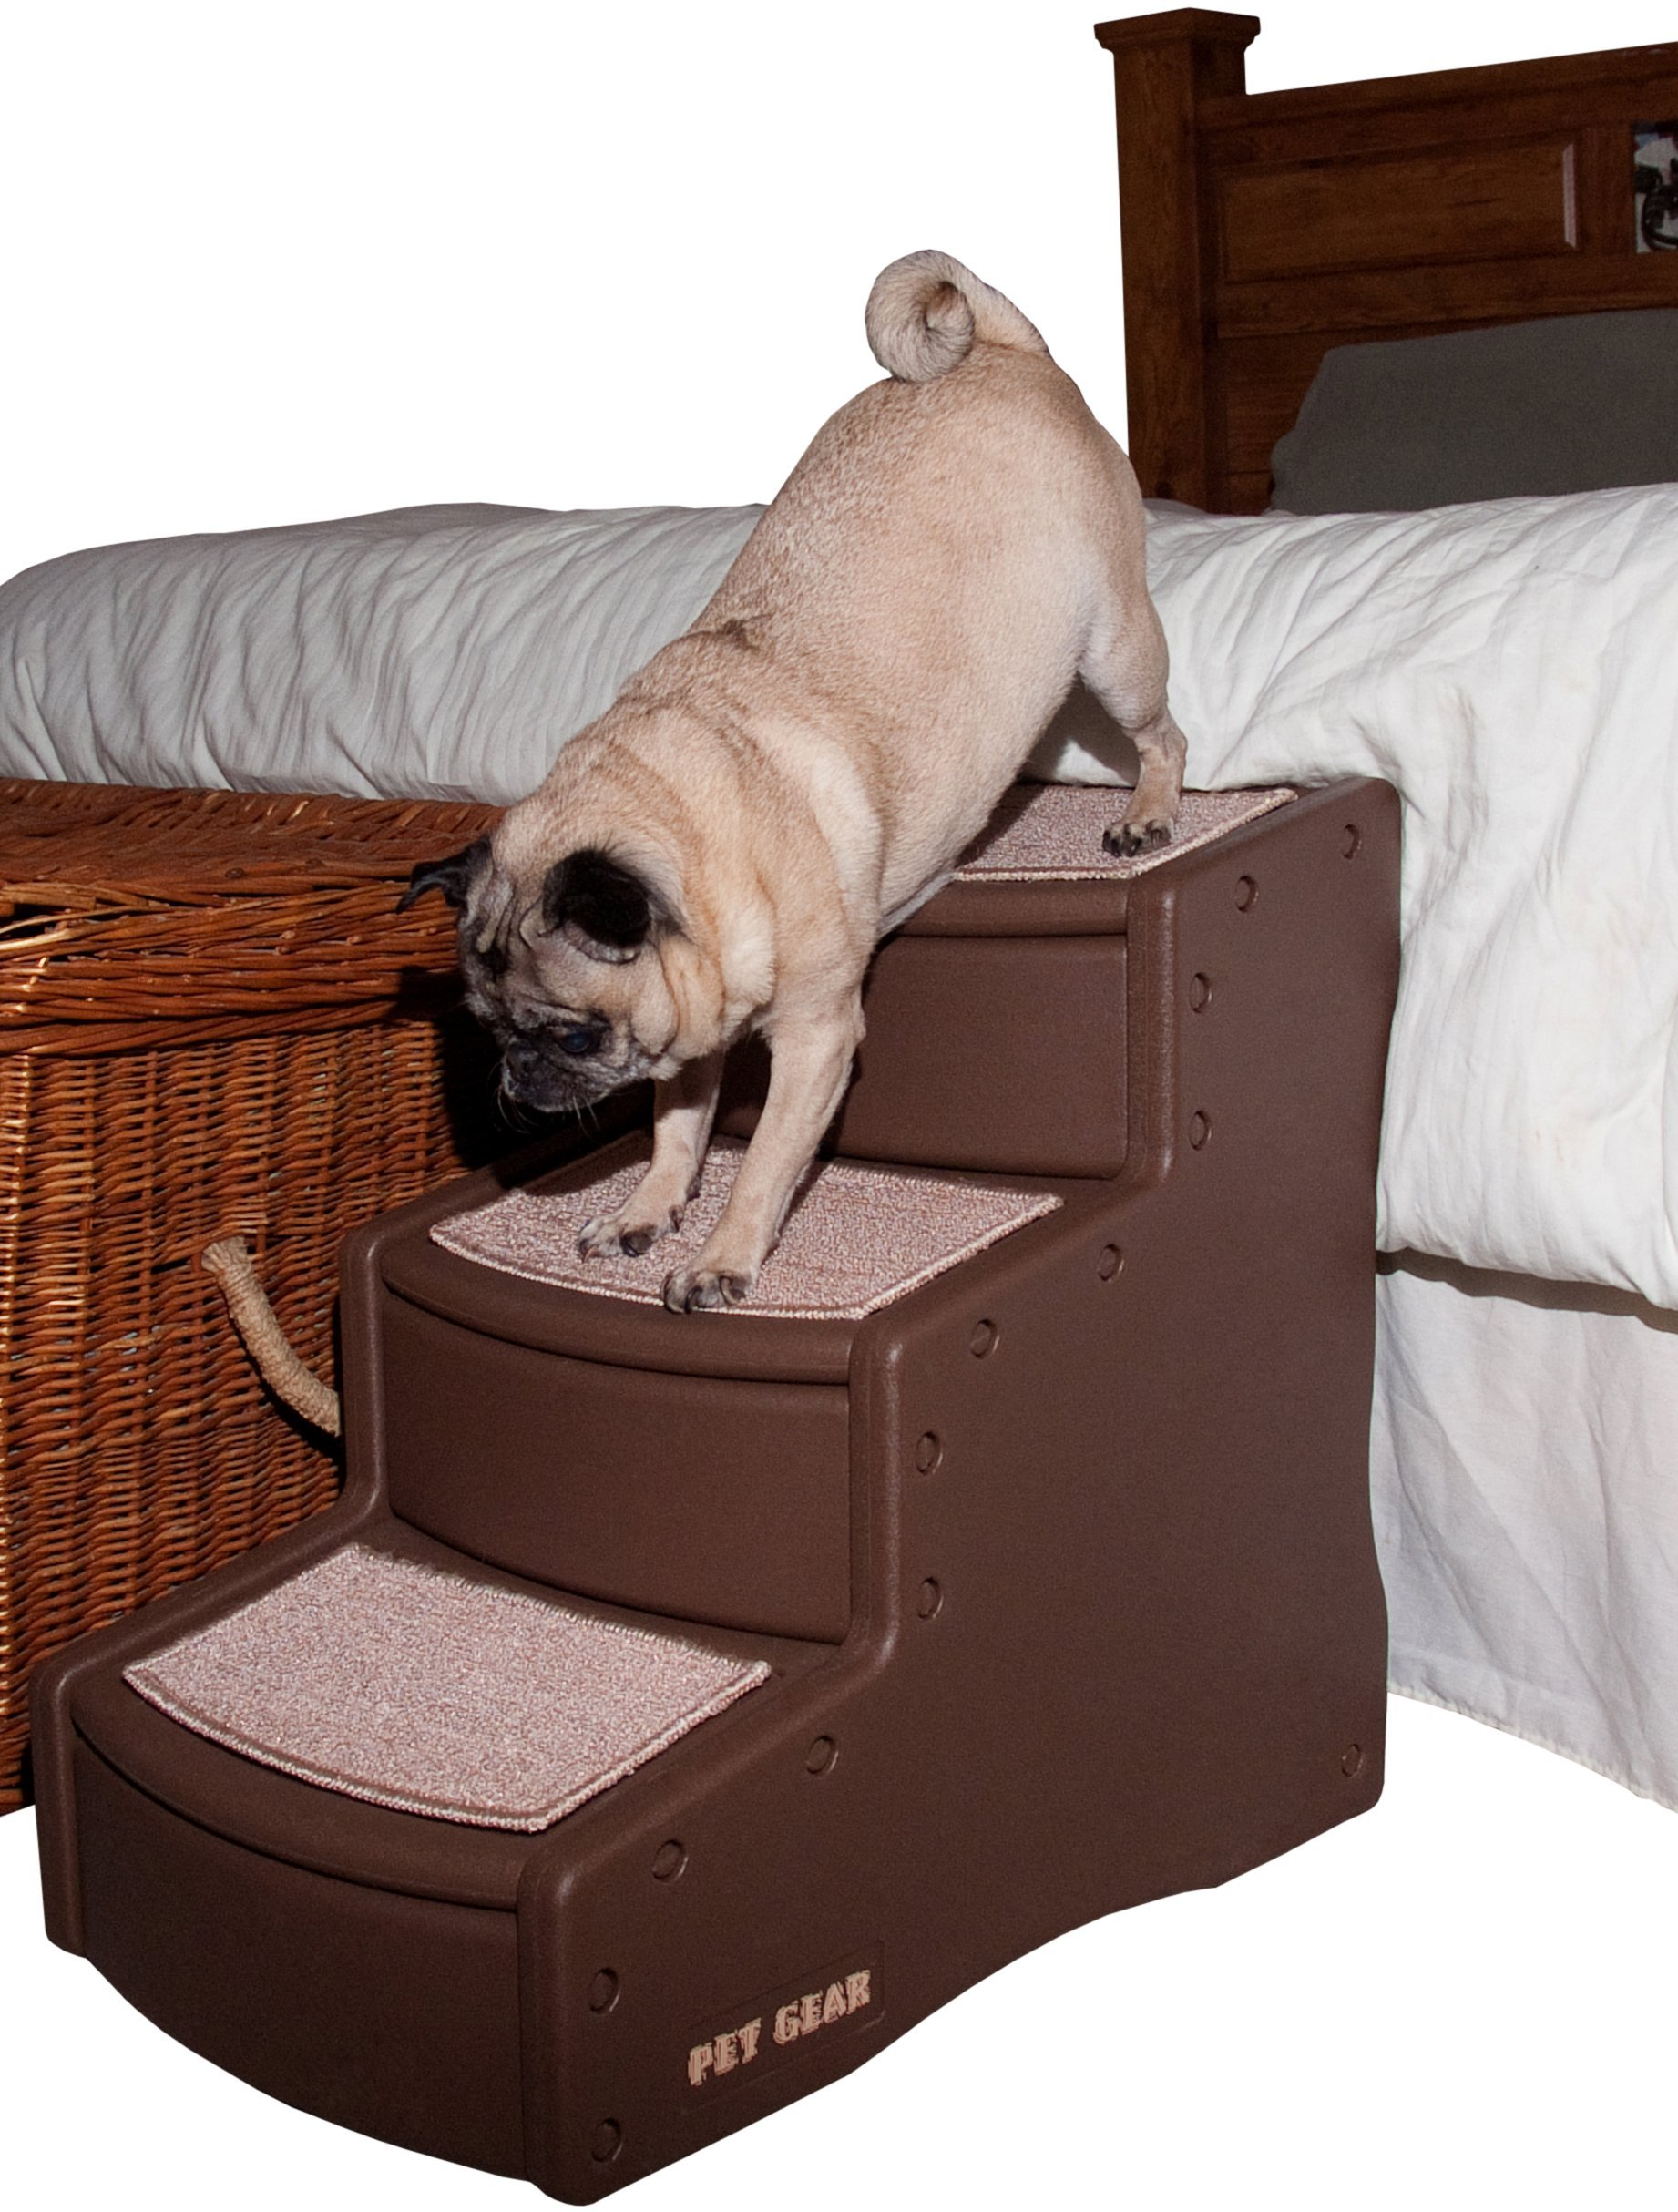 Ordinaire Get Quotations · Pet Gear Easy Step III Pet Stairs, 3 Step For Cats/Dogs,